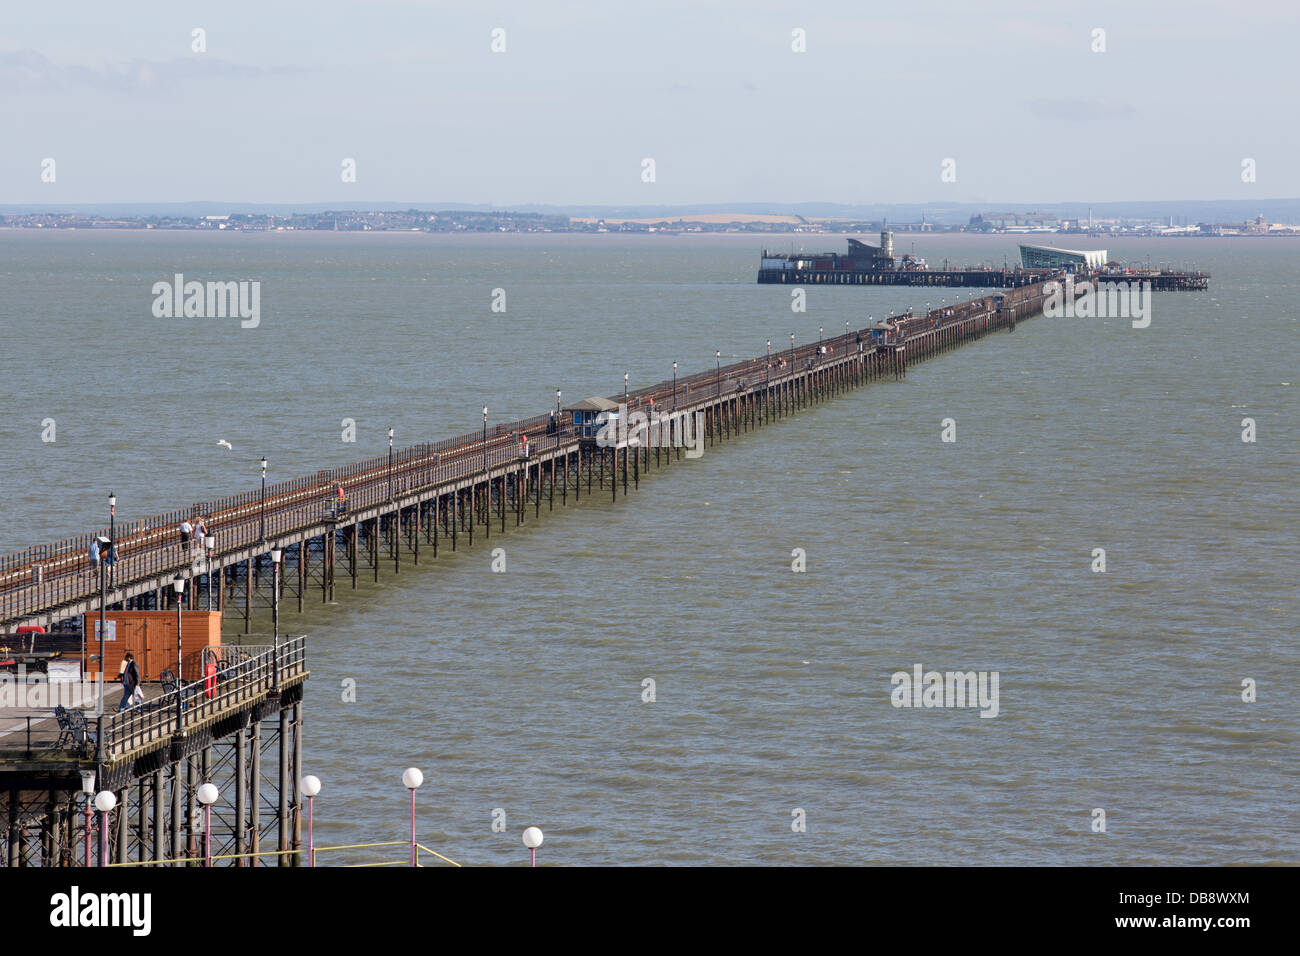 25TH JULY 2013 SOUTHEND-ON-SEA. Southend PIER into the RIVER THAMES - Stock Image